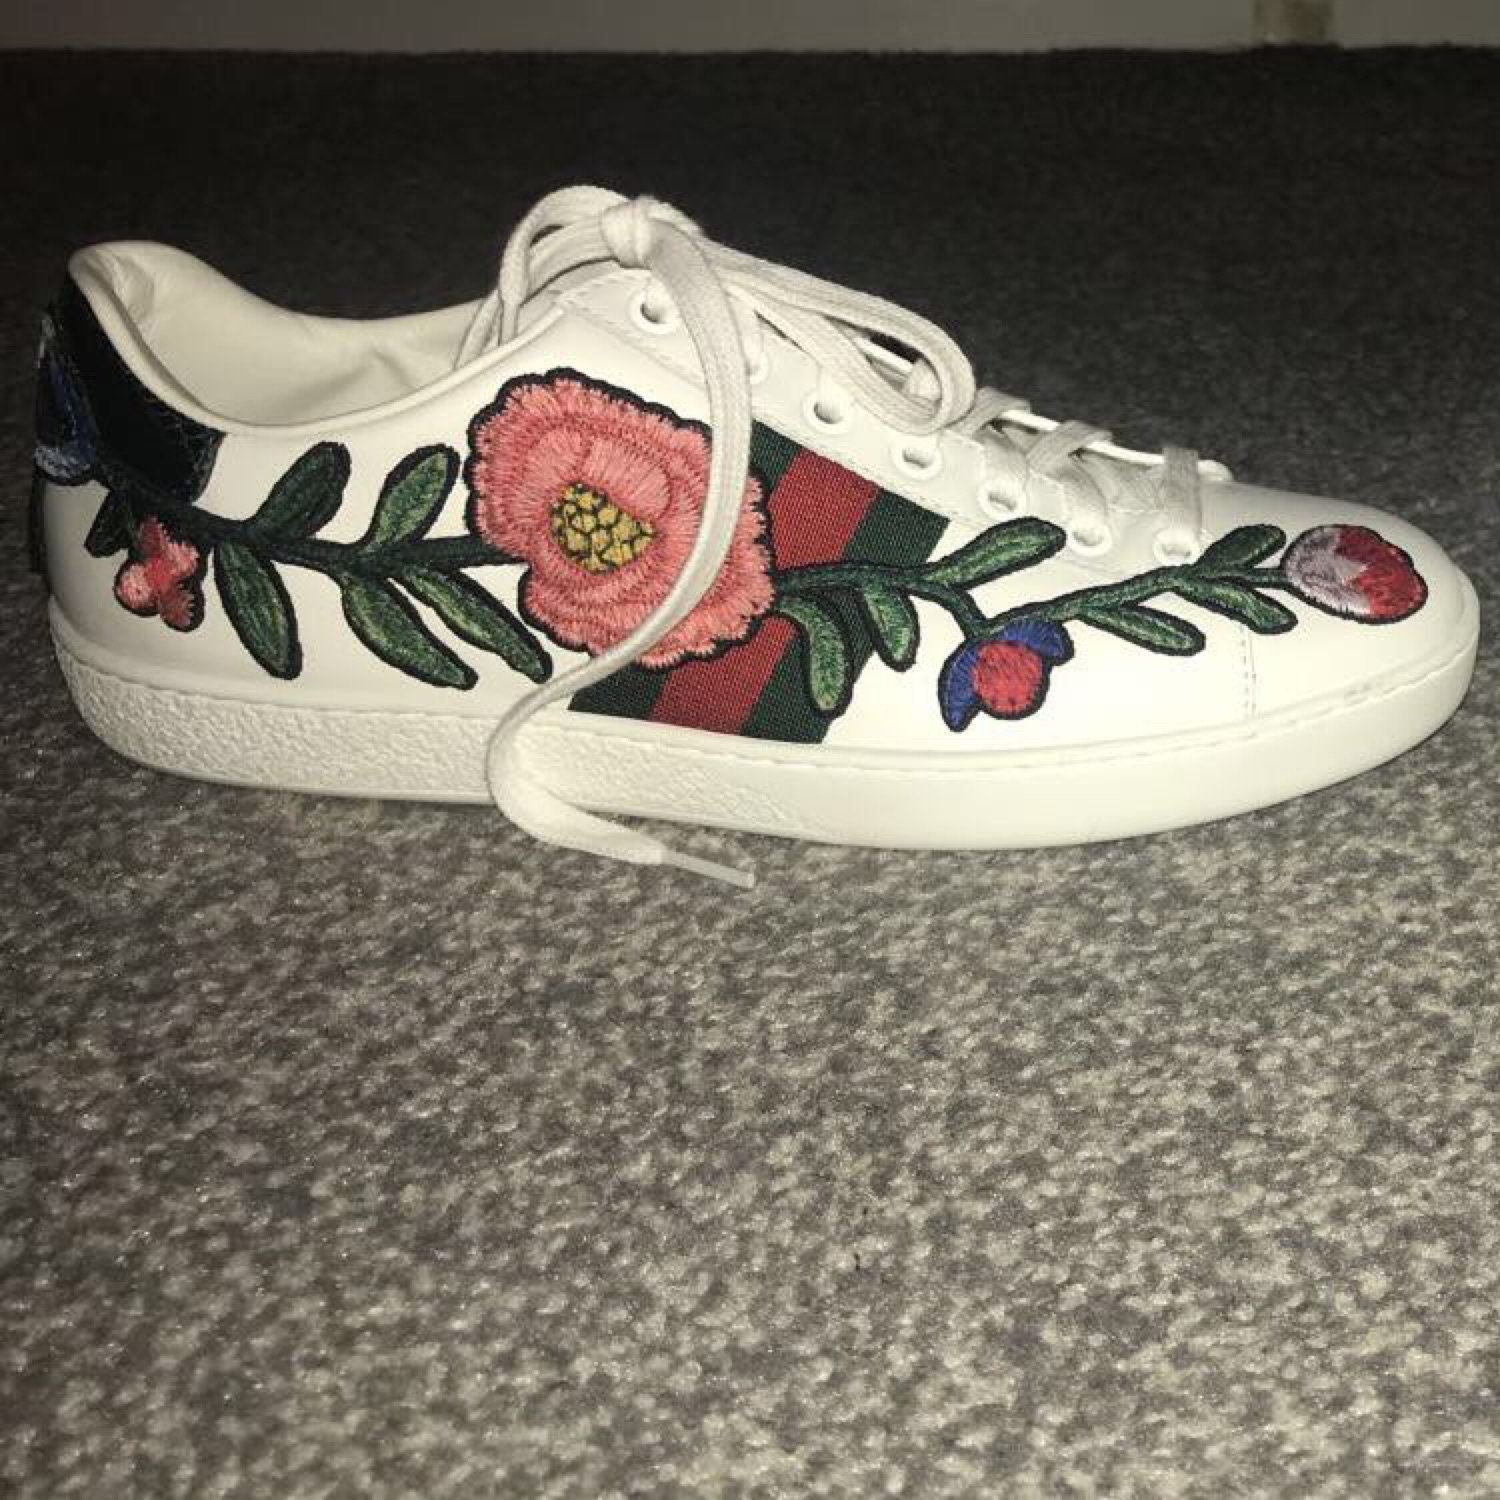 ccb3c7b78a0 Gucci Floral Ace Embroidered Sneakers